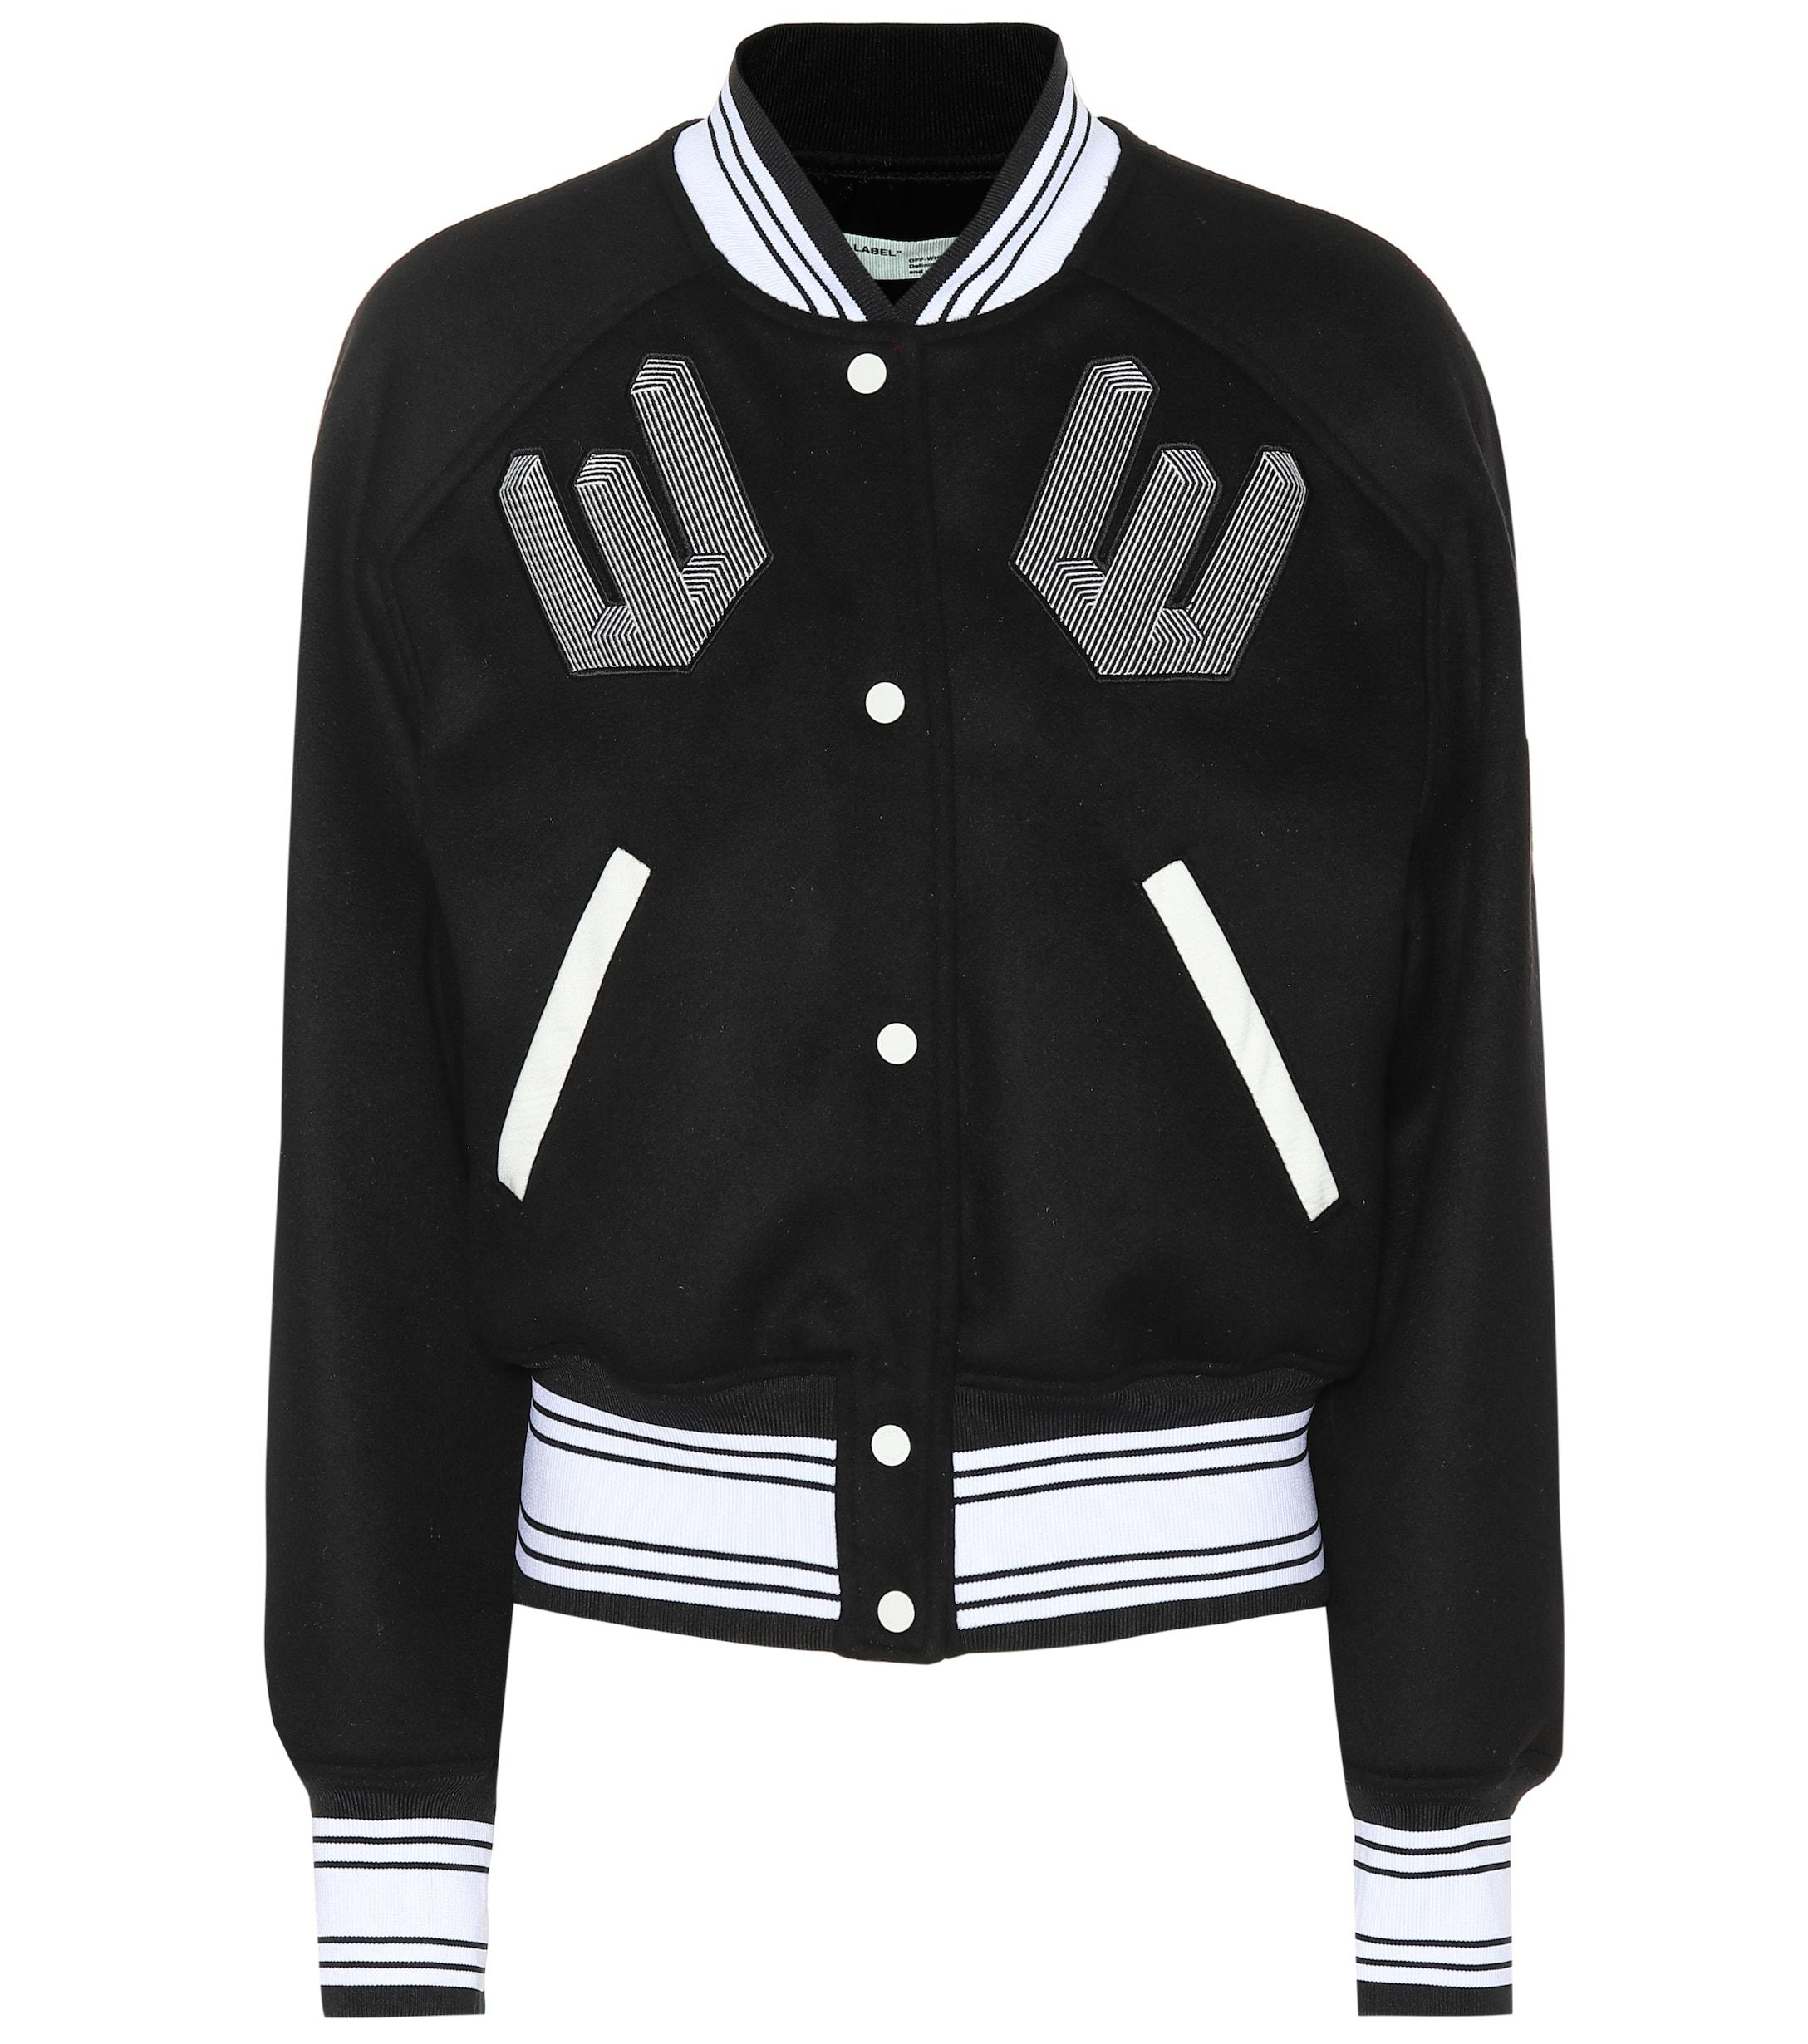 62bfdfadbc1f Off-White c o Virgil Abloh Wool-blend Varsity Jacket in Black - Lyst